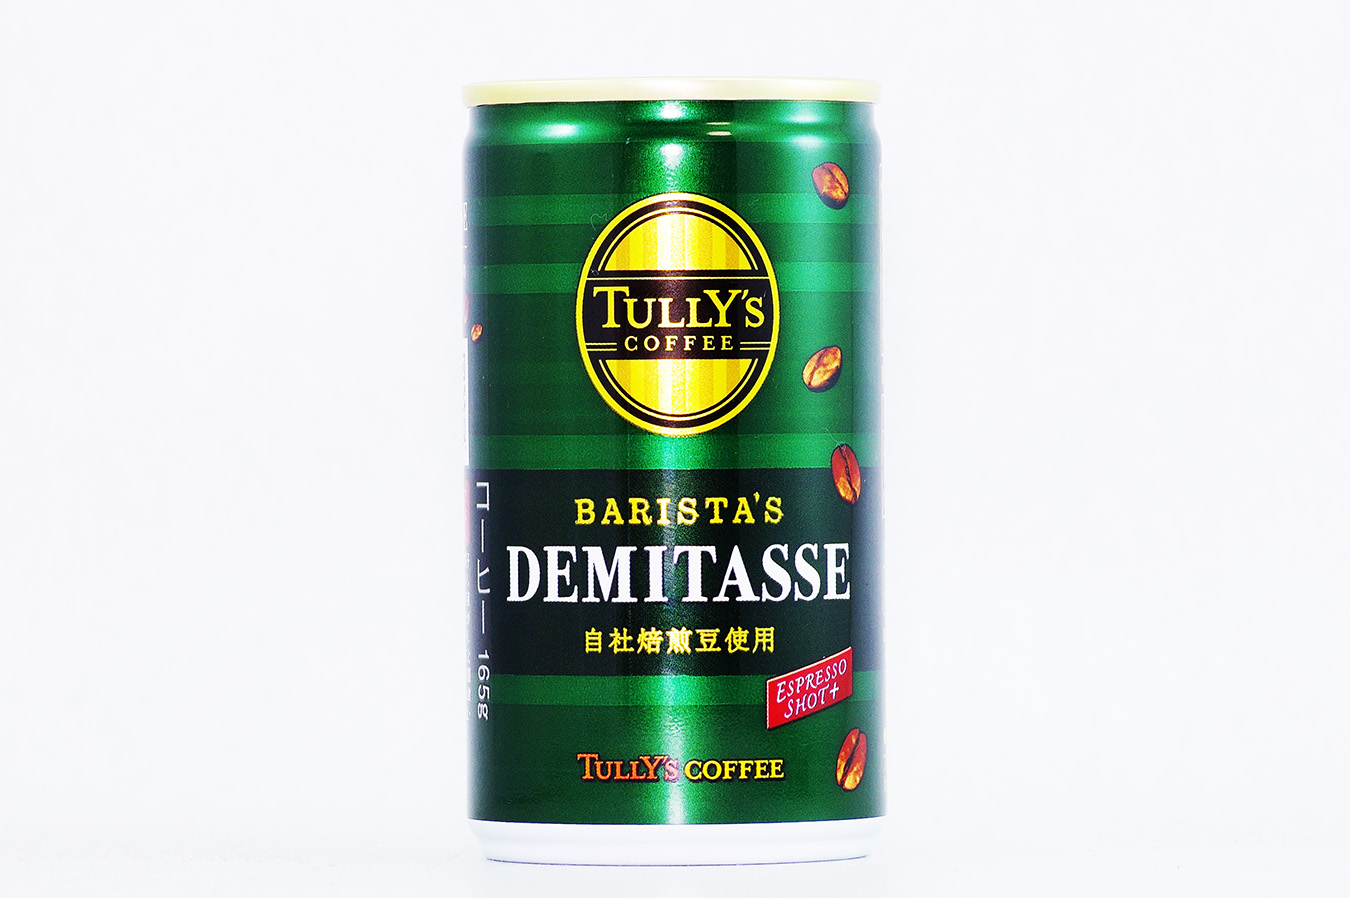 TULLY'S COFFEE BARISTA'S BARISTA'S DEMITASSE 2016年10月